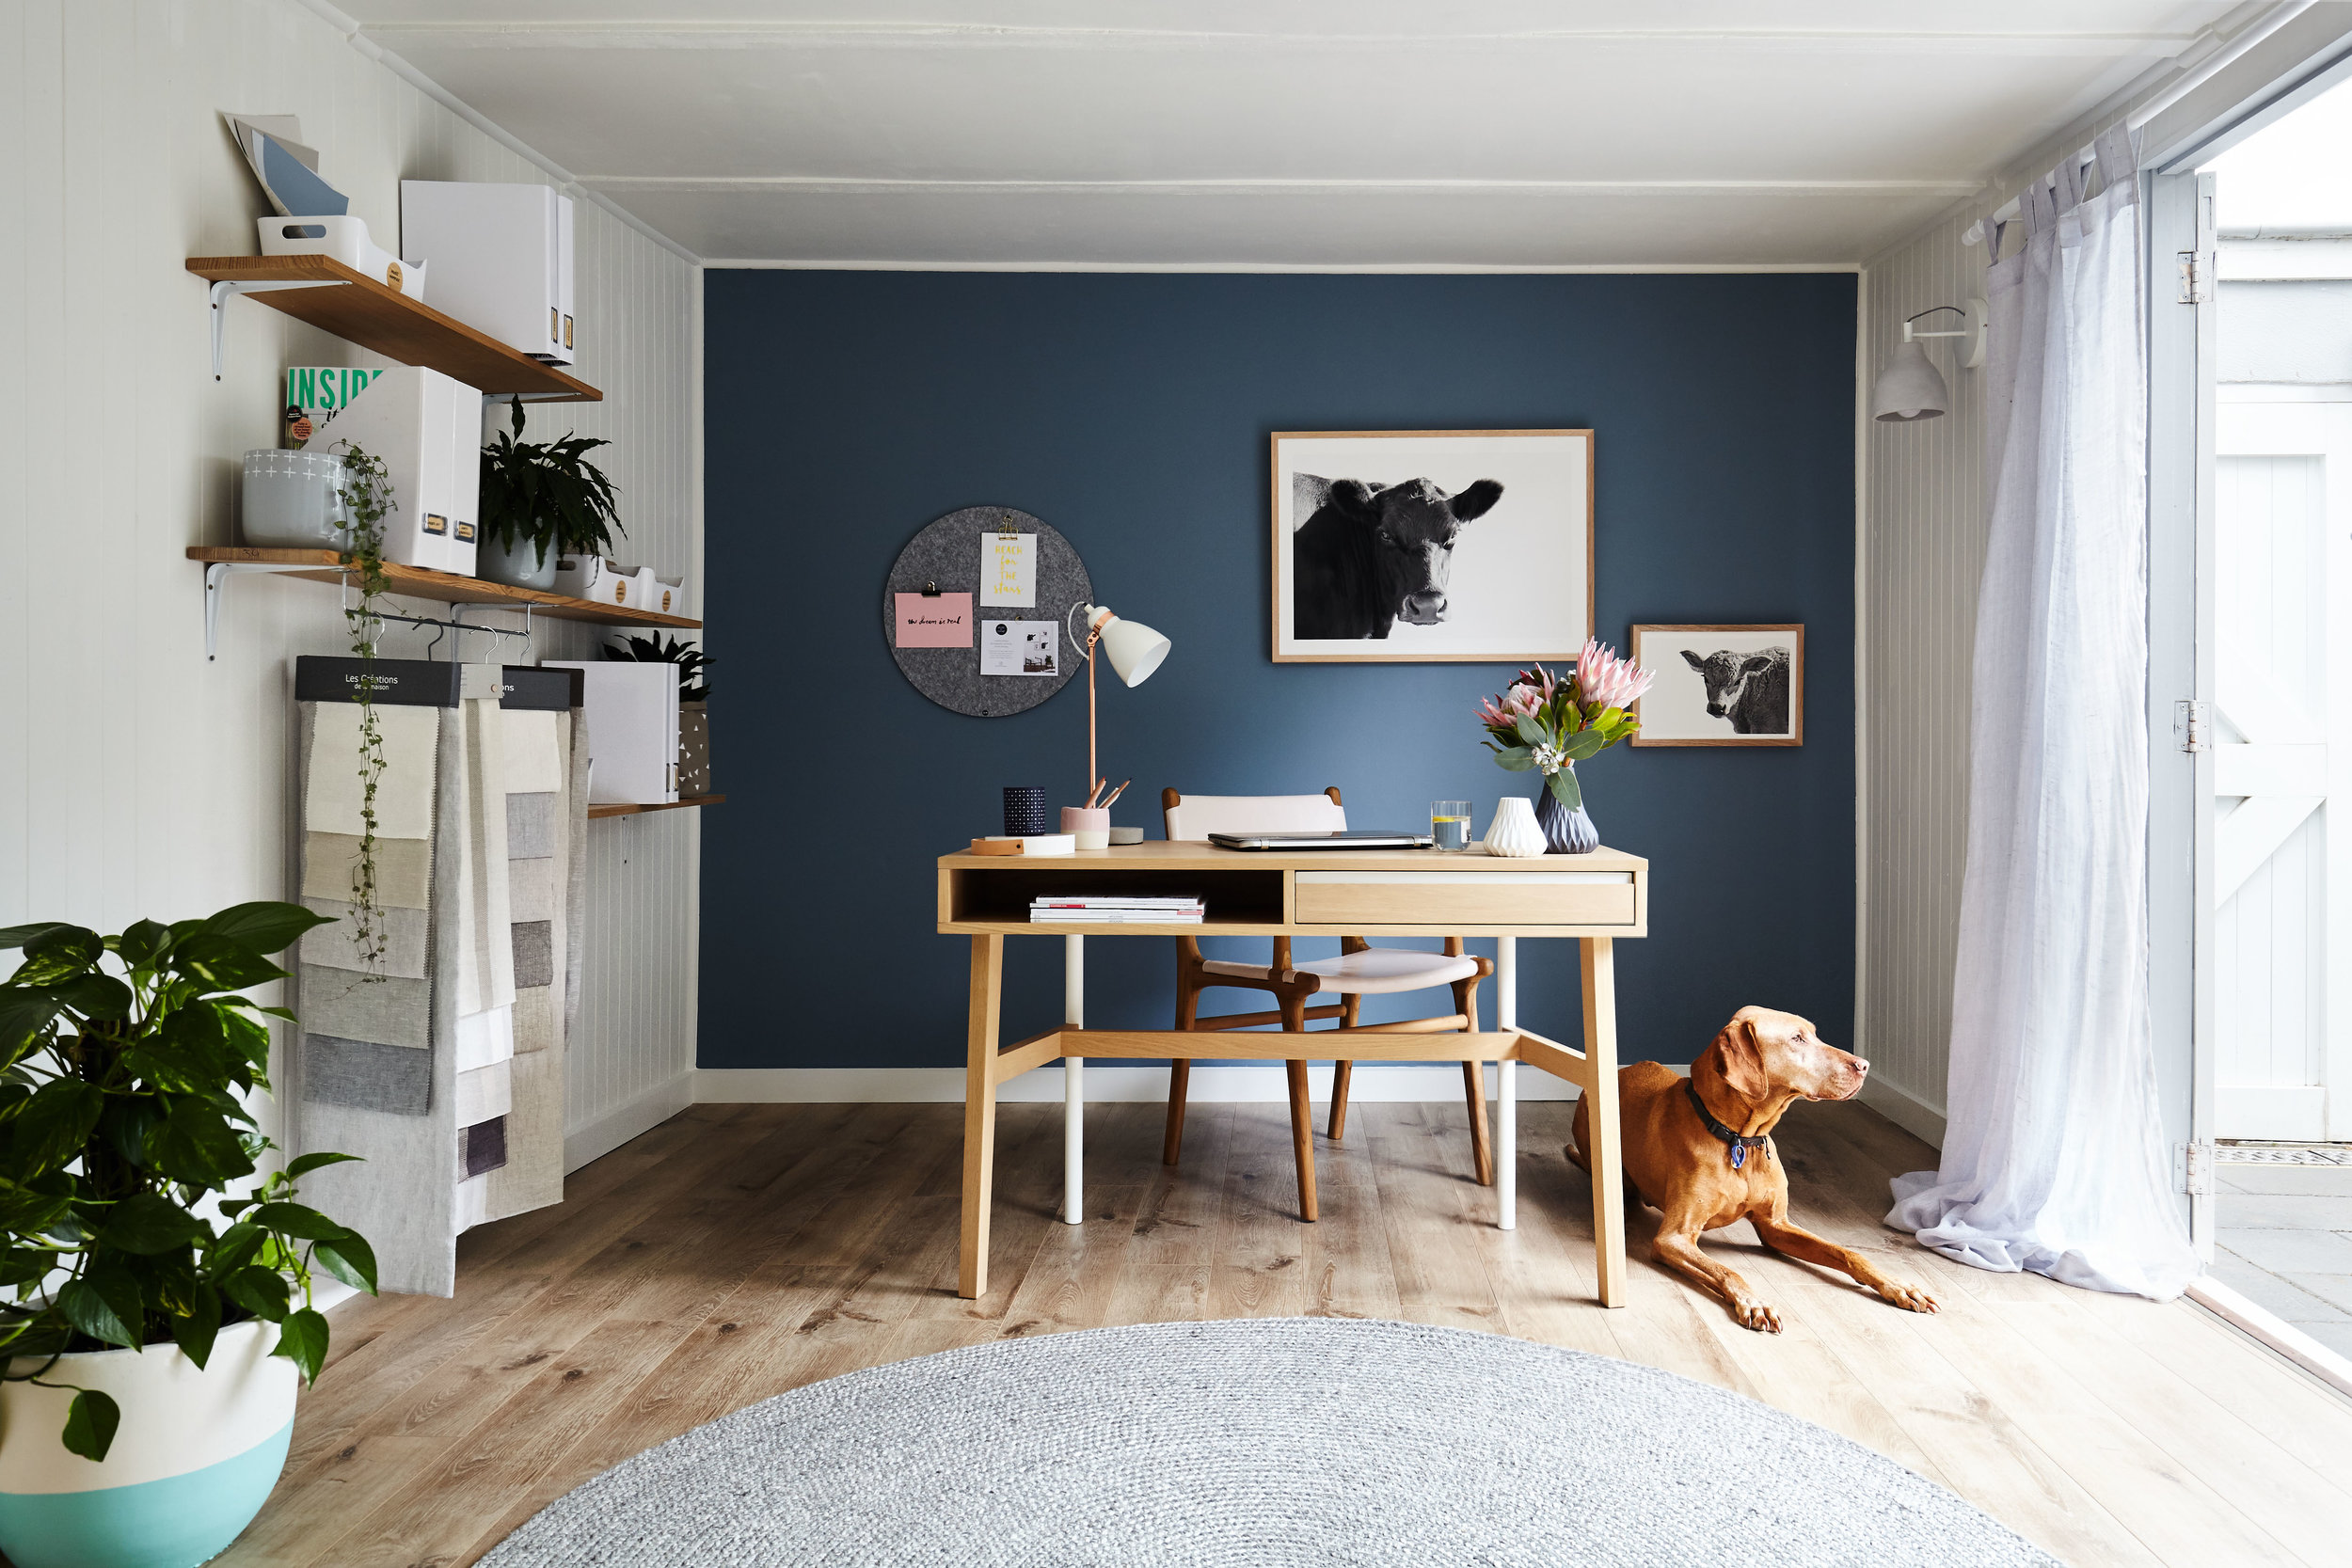 The Maitland Street Interiors studio beautifully captured by  Stephanie Rooney , featuring Max the Hungarian Vizsla. Interior Stylist: Sarah Elshaug,  Maitland Street Interiors